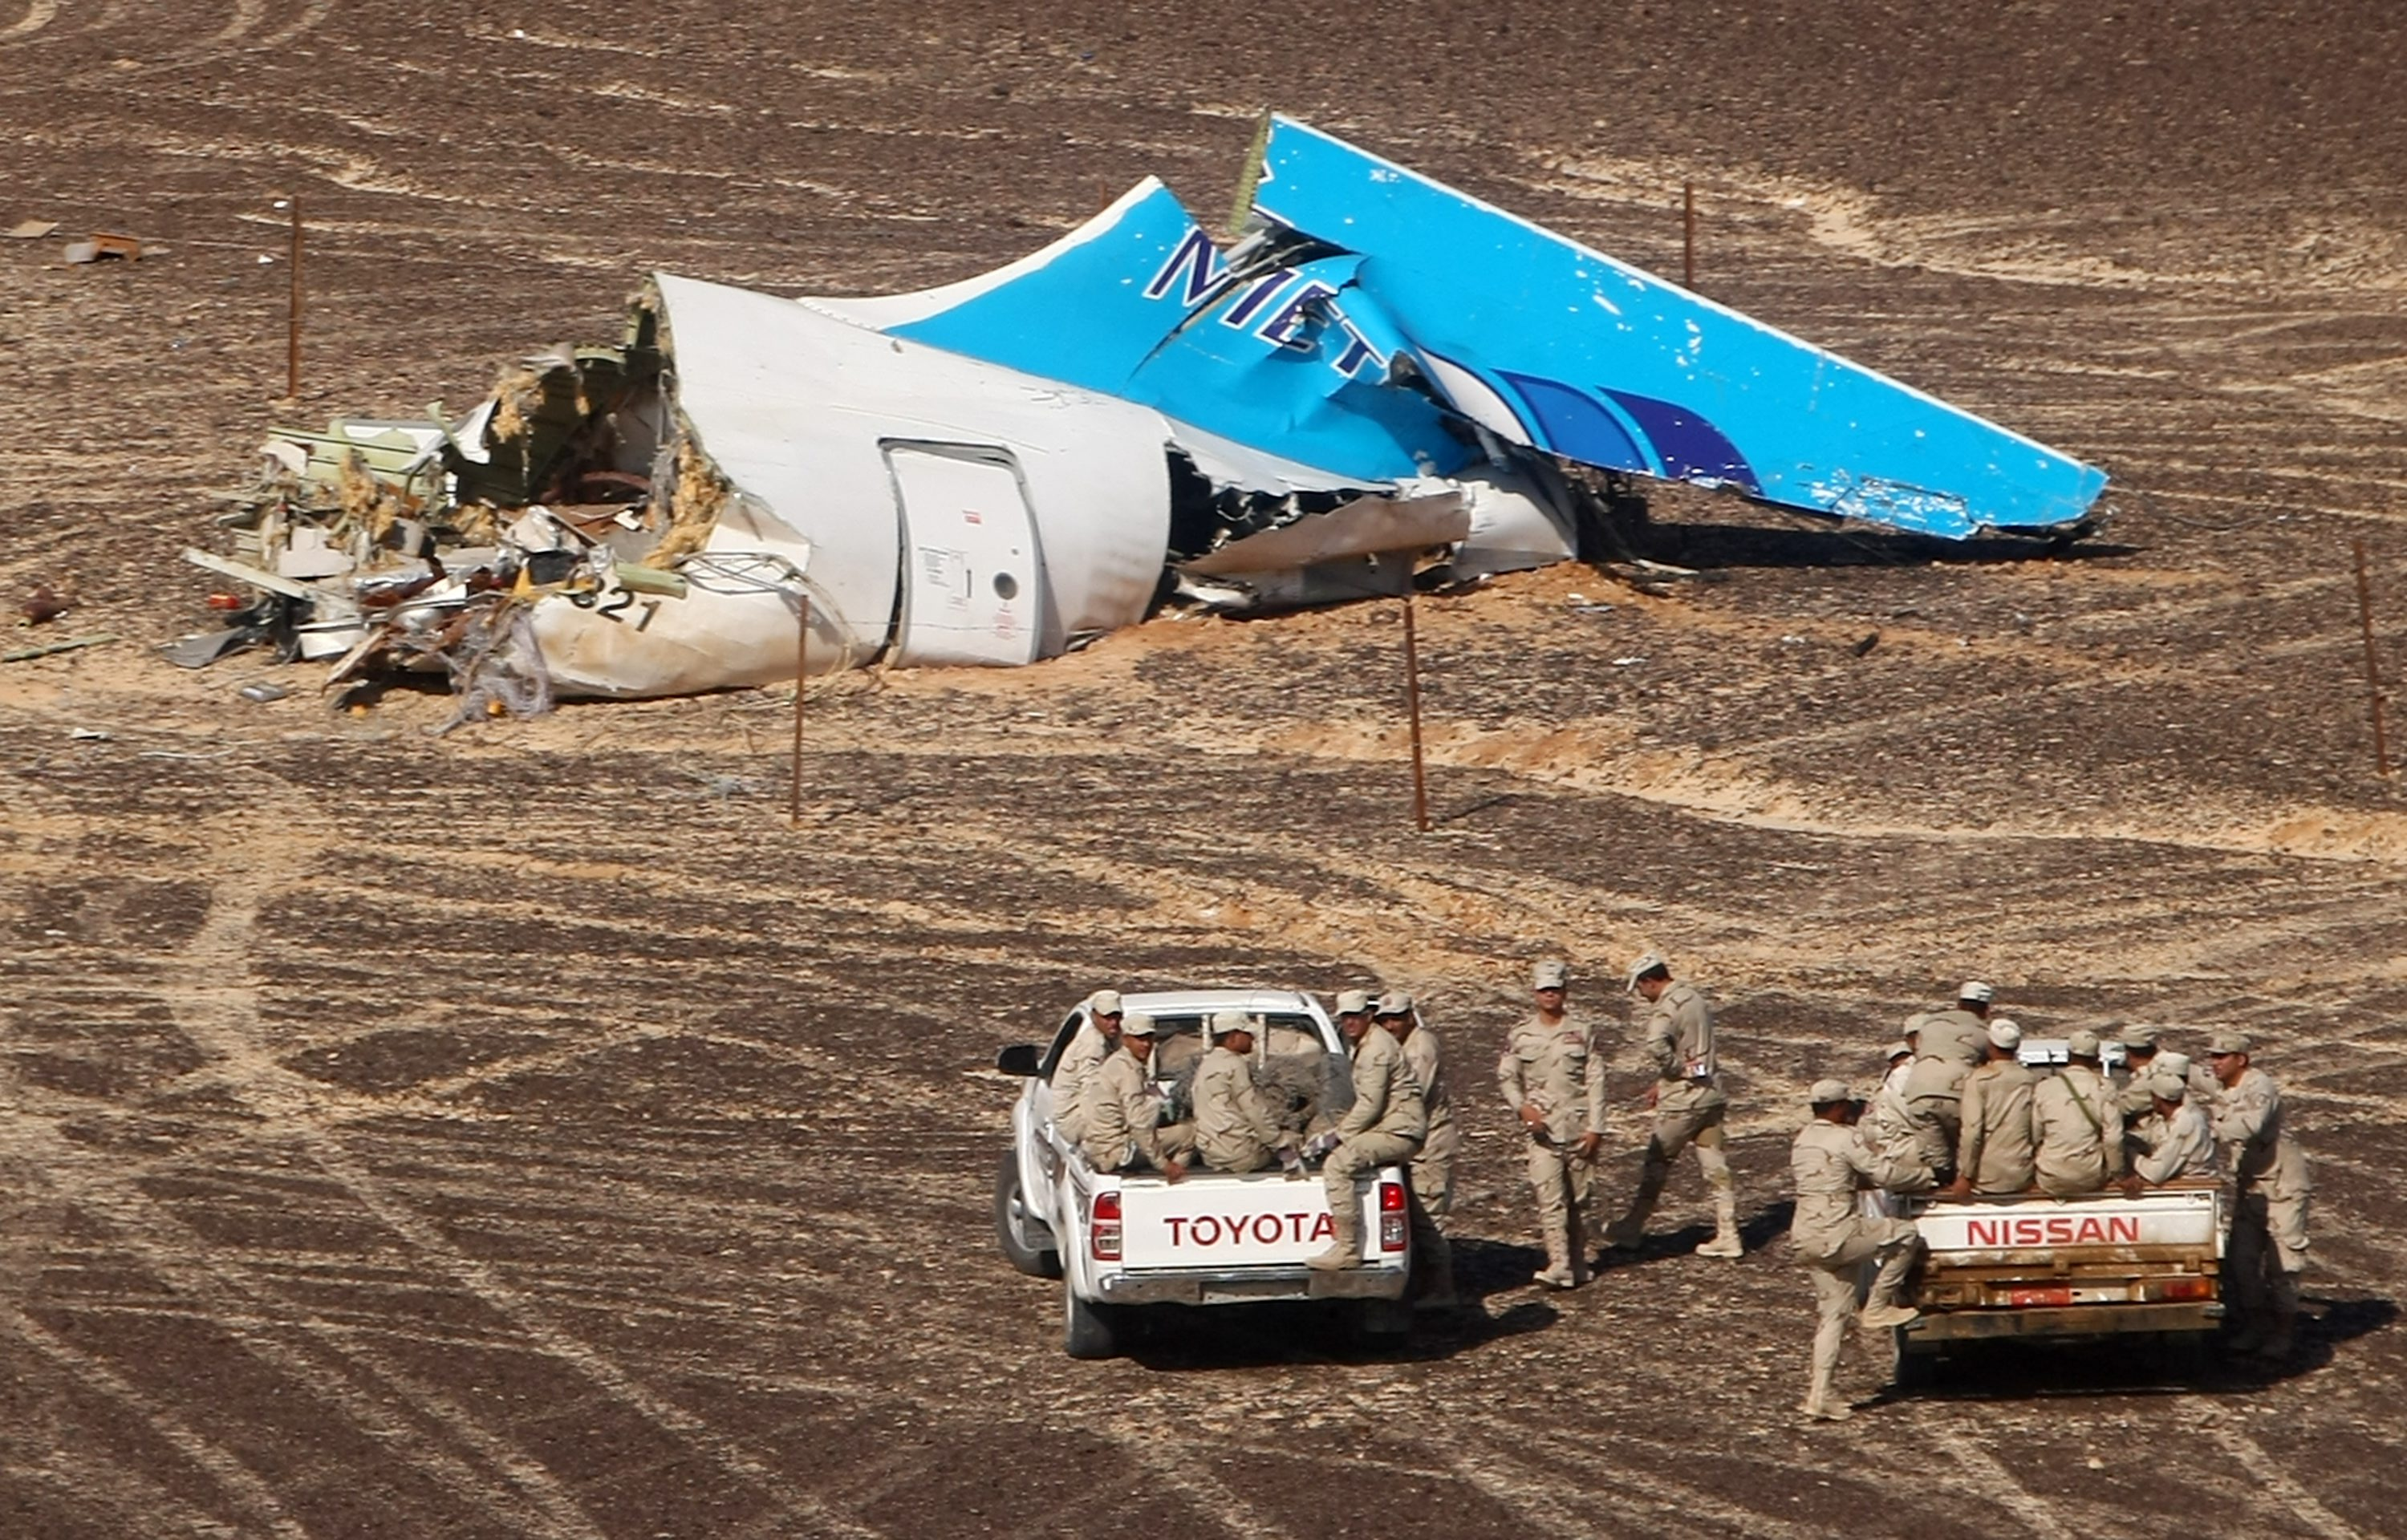 In this photo made available Nov. 2, 2015, and provided by Russian Emergency Situations Ministry, Egyptian military forces approach a plane's tail at the wreckage of a passenger jet bound for St. Petersburg in Russia that crashed in Hassana, Egypt, N...